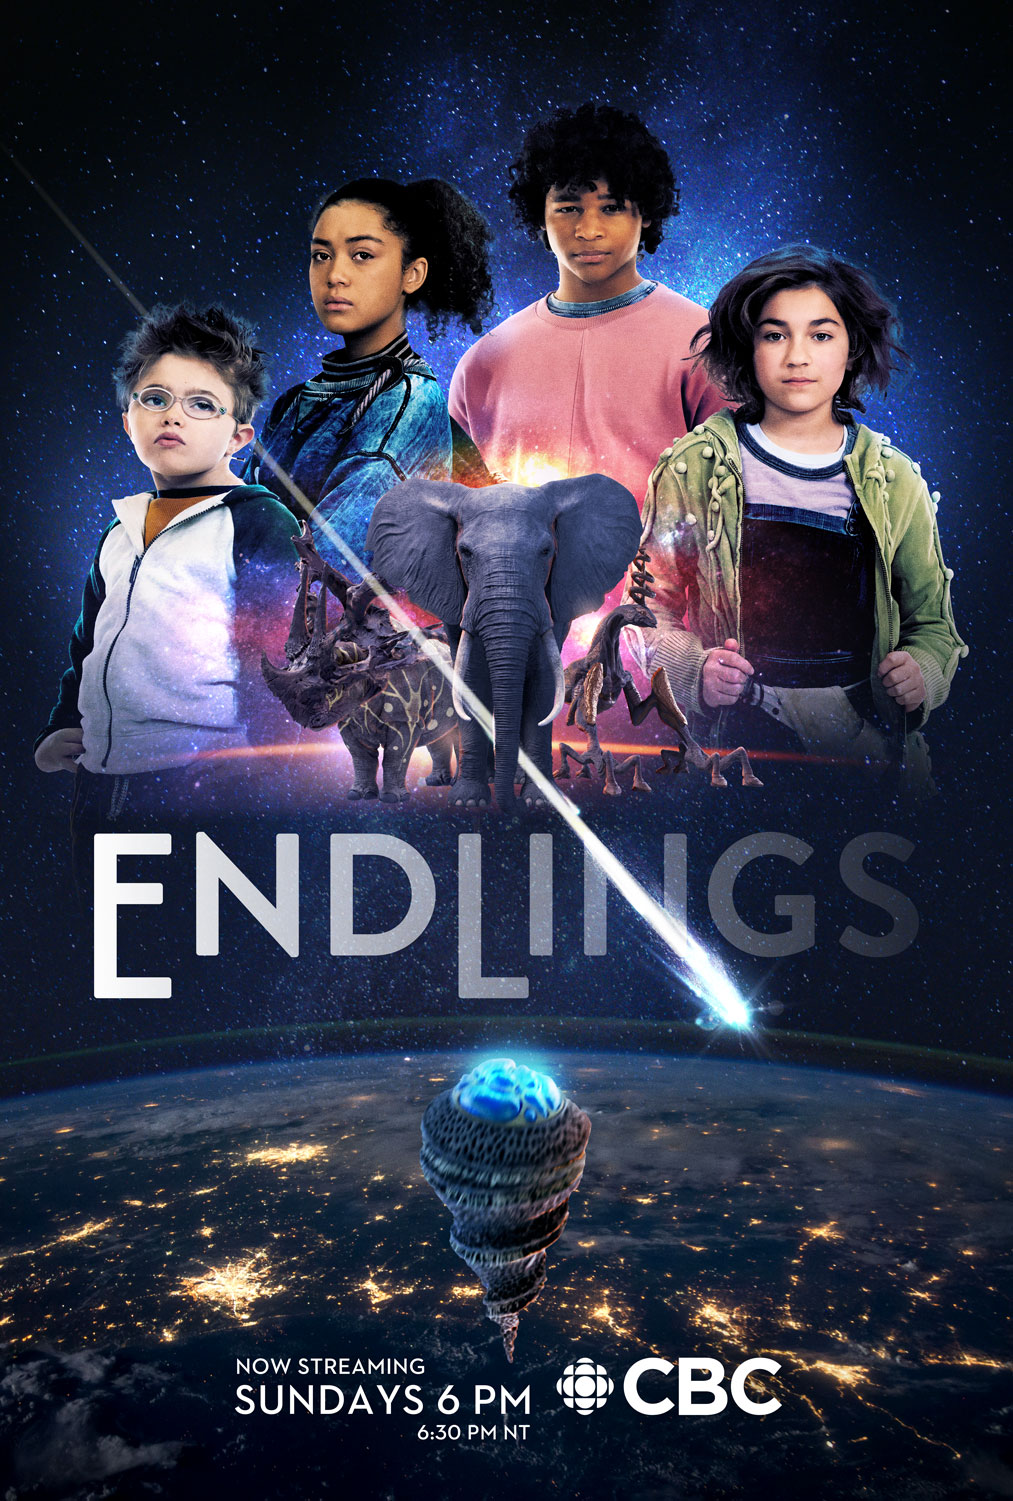 Endlings TV Poster